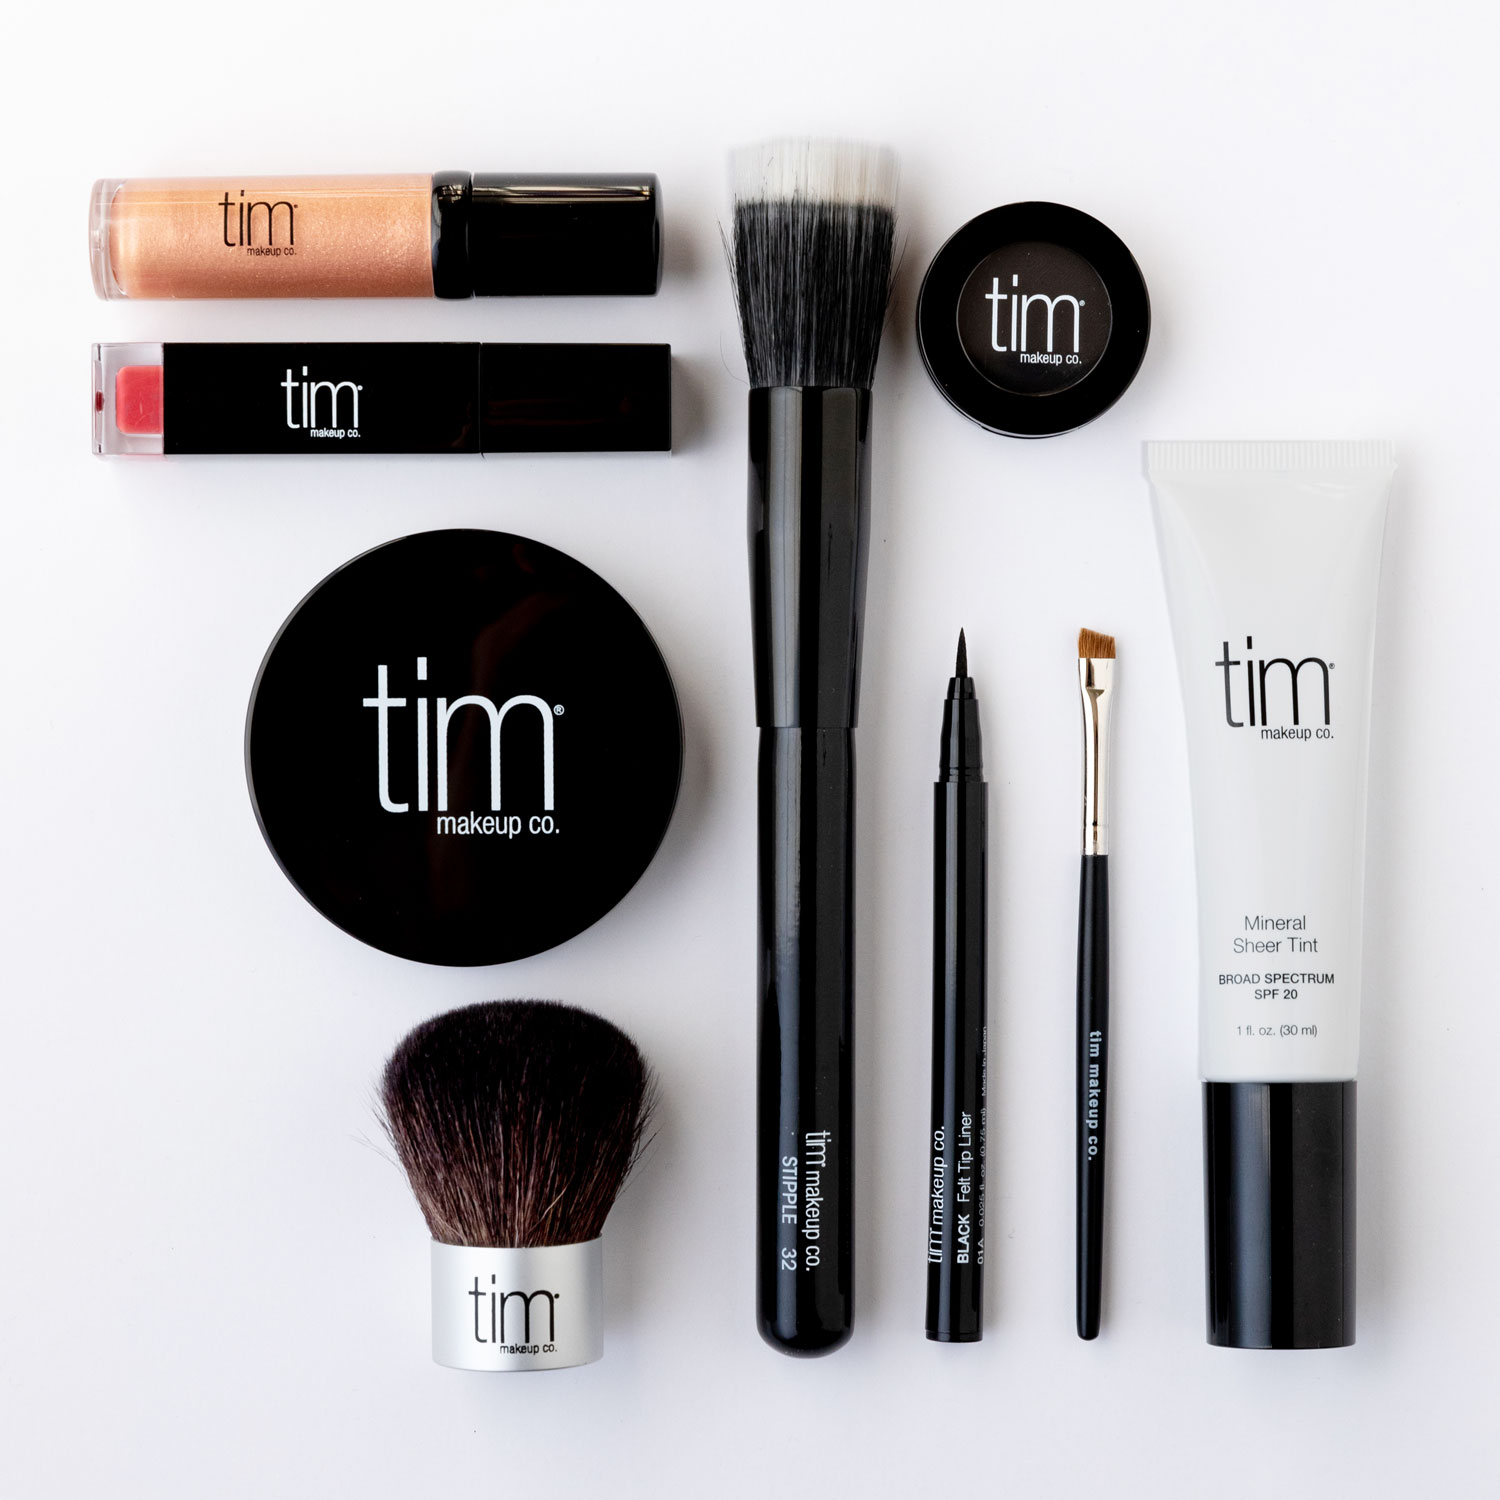 The TIM Kit makeup products.